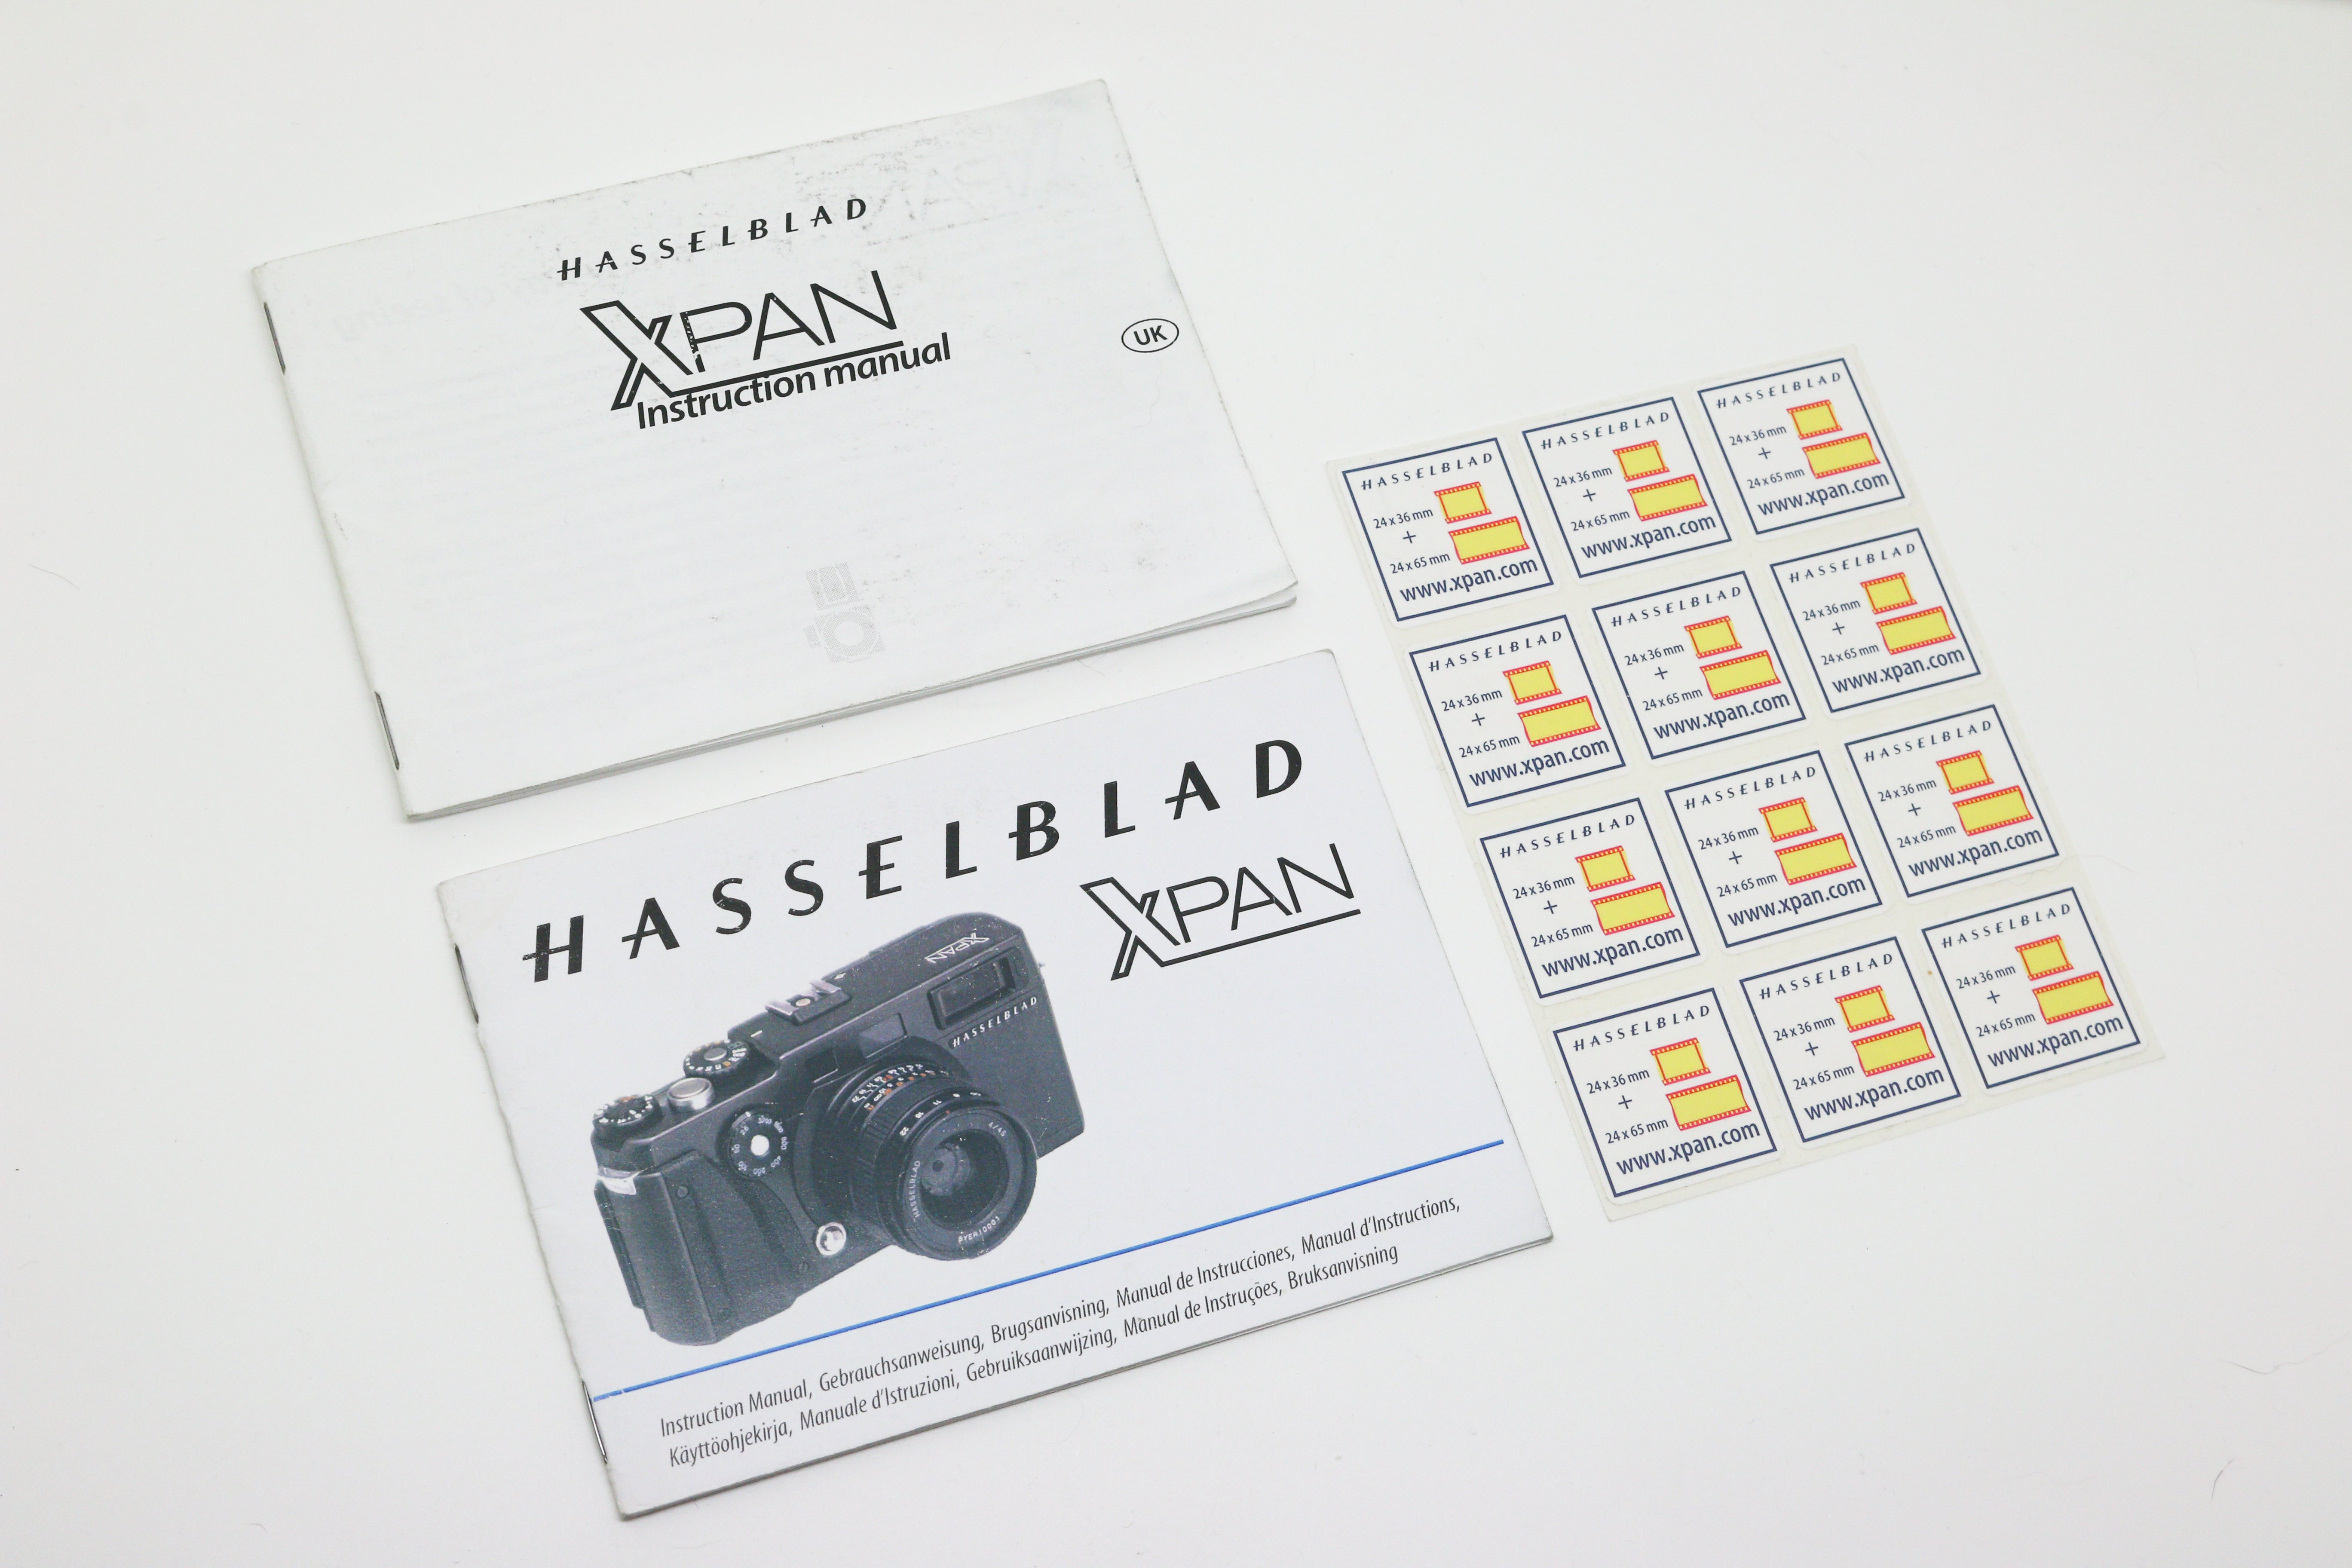 Hasselblad XPan w/ 45mm Kit